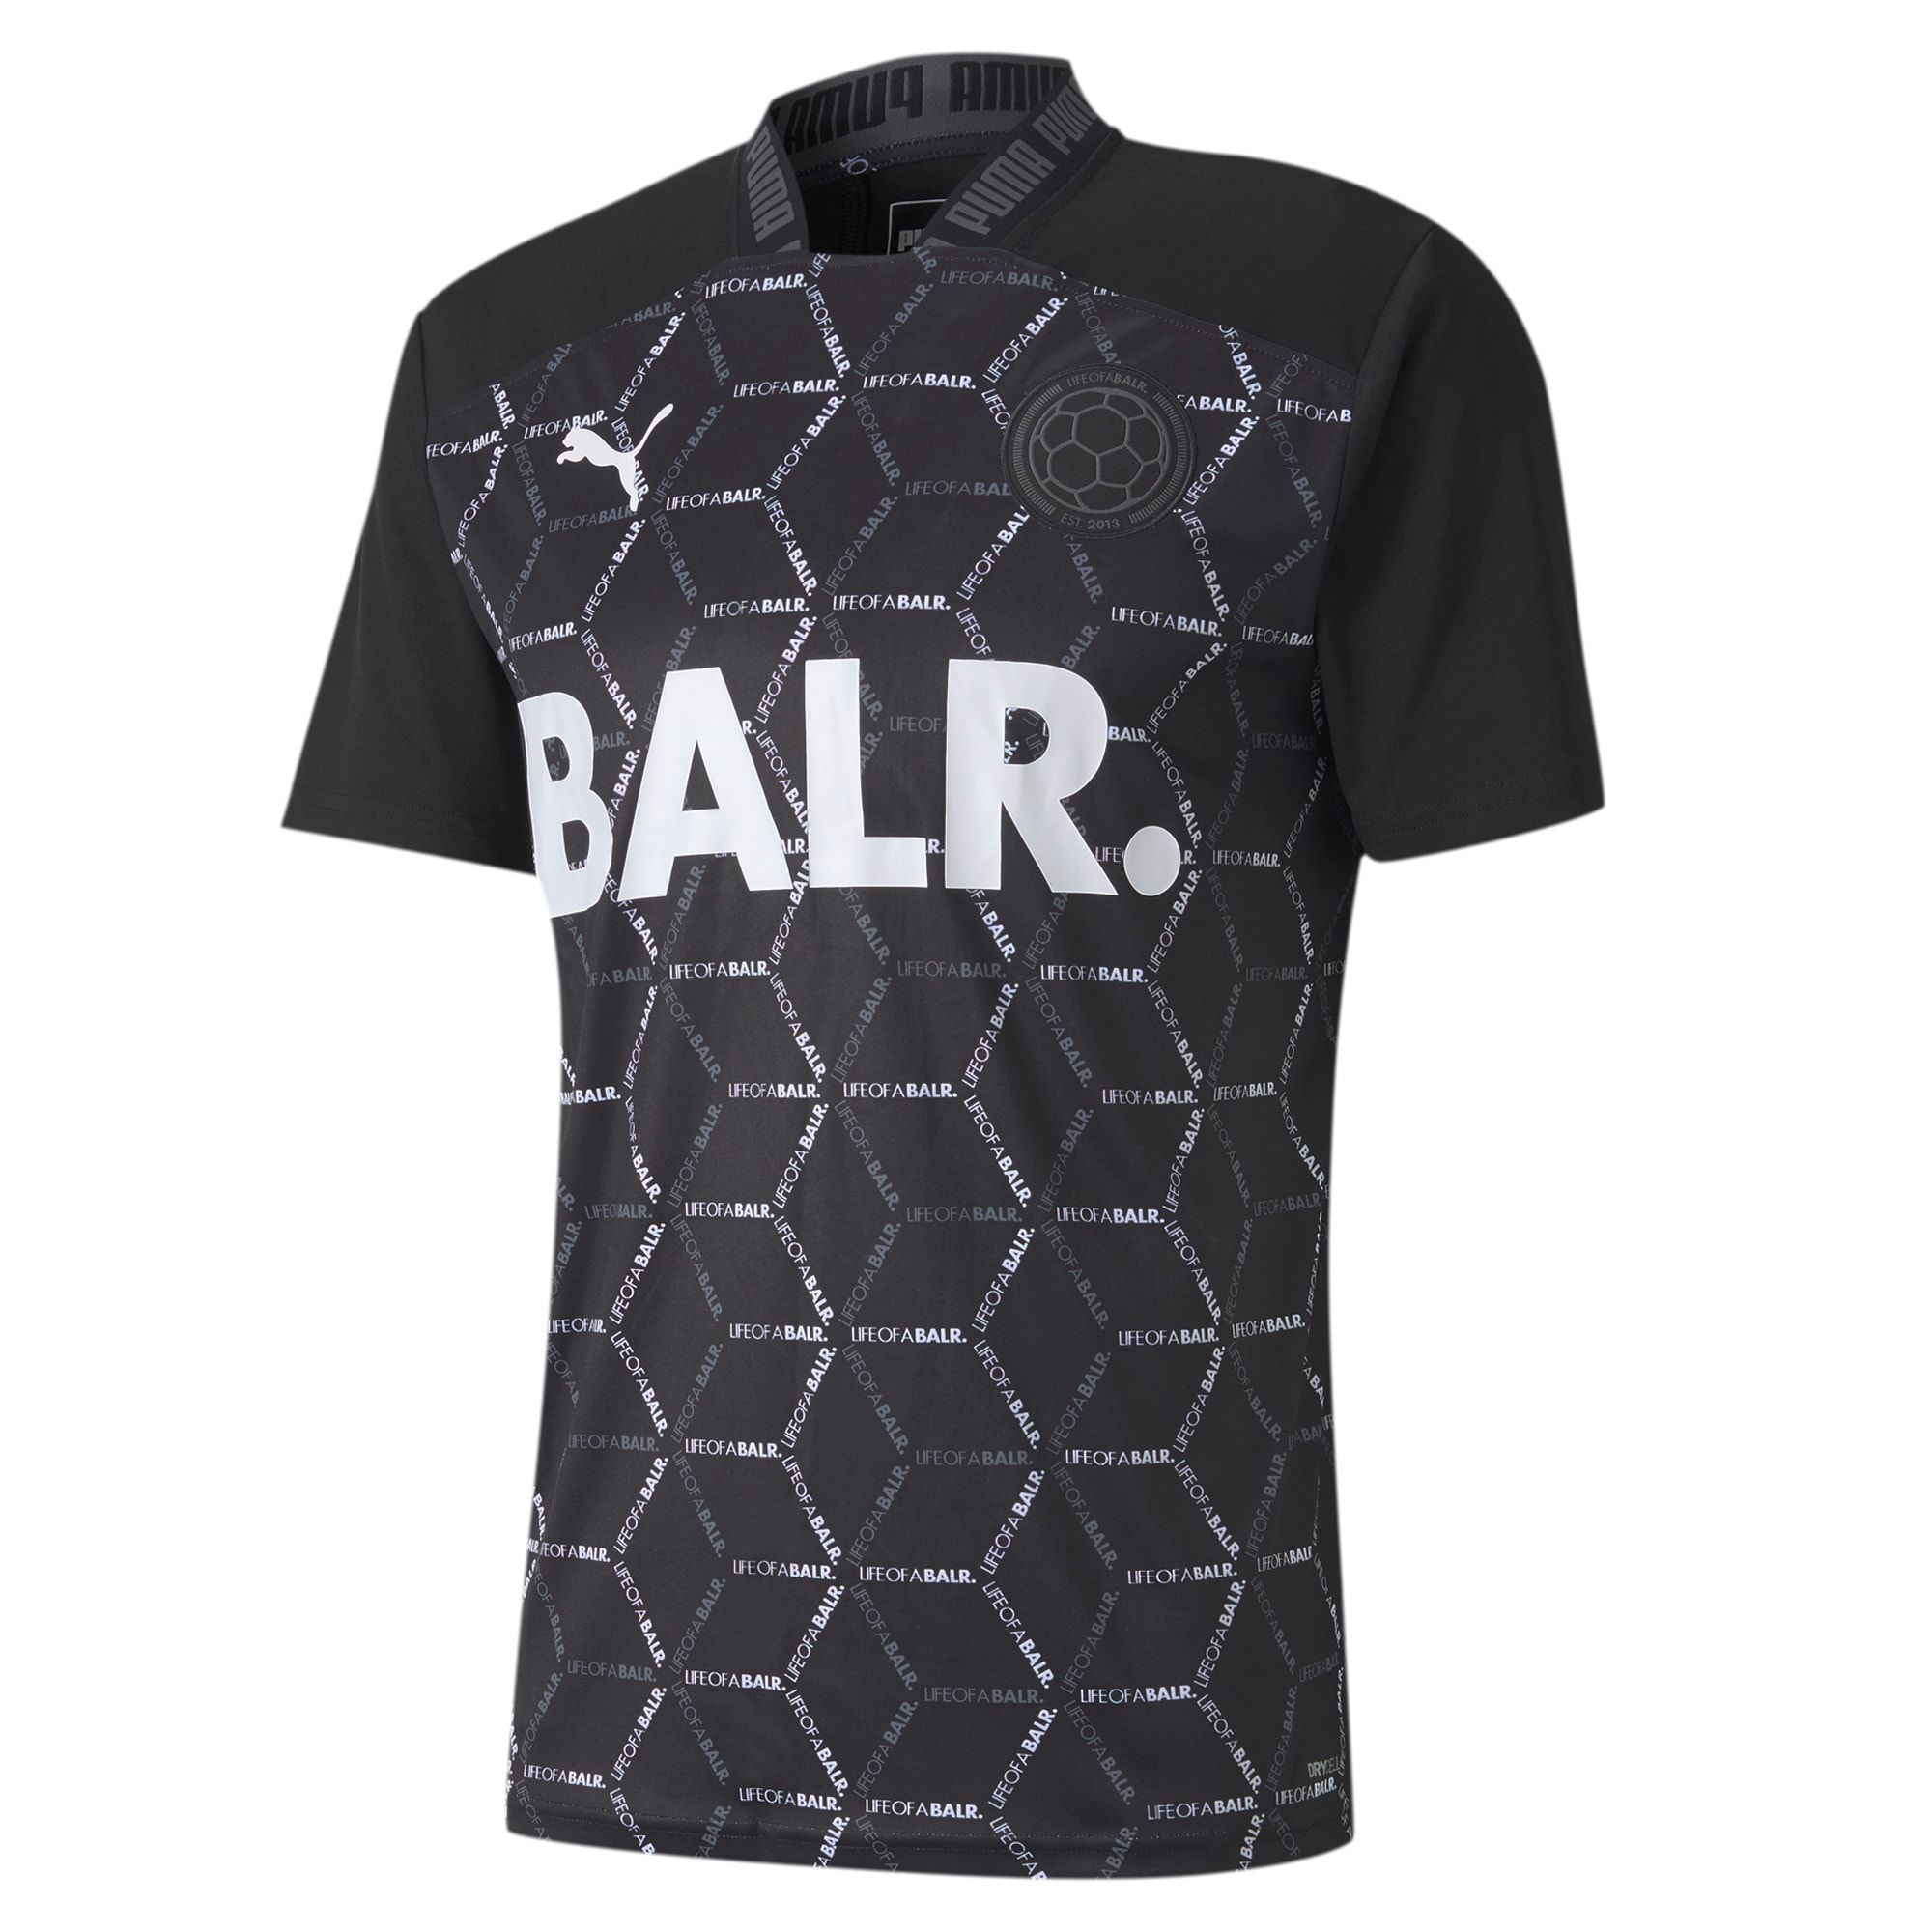 PUMA x Balr. Men's Match Shirt in Black size X Large ...